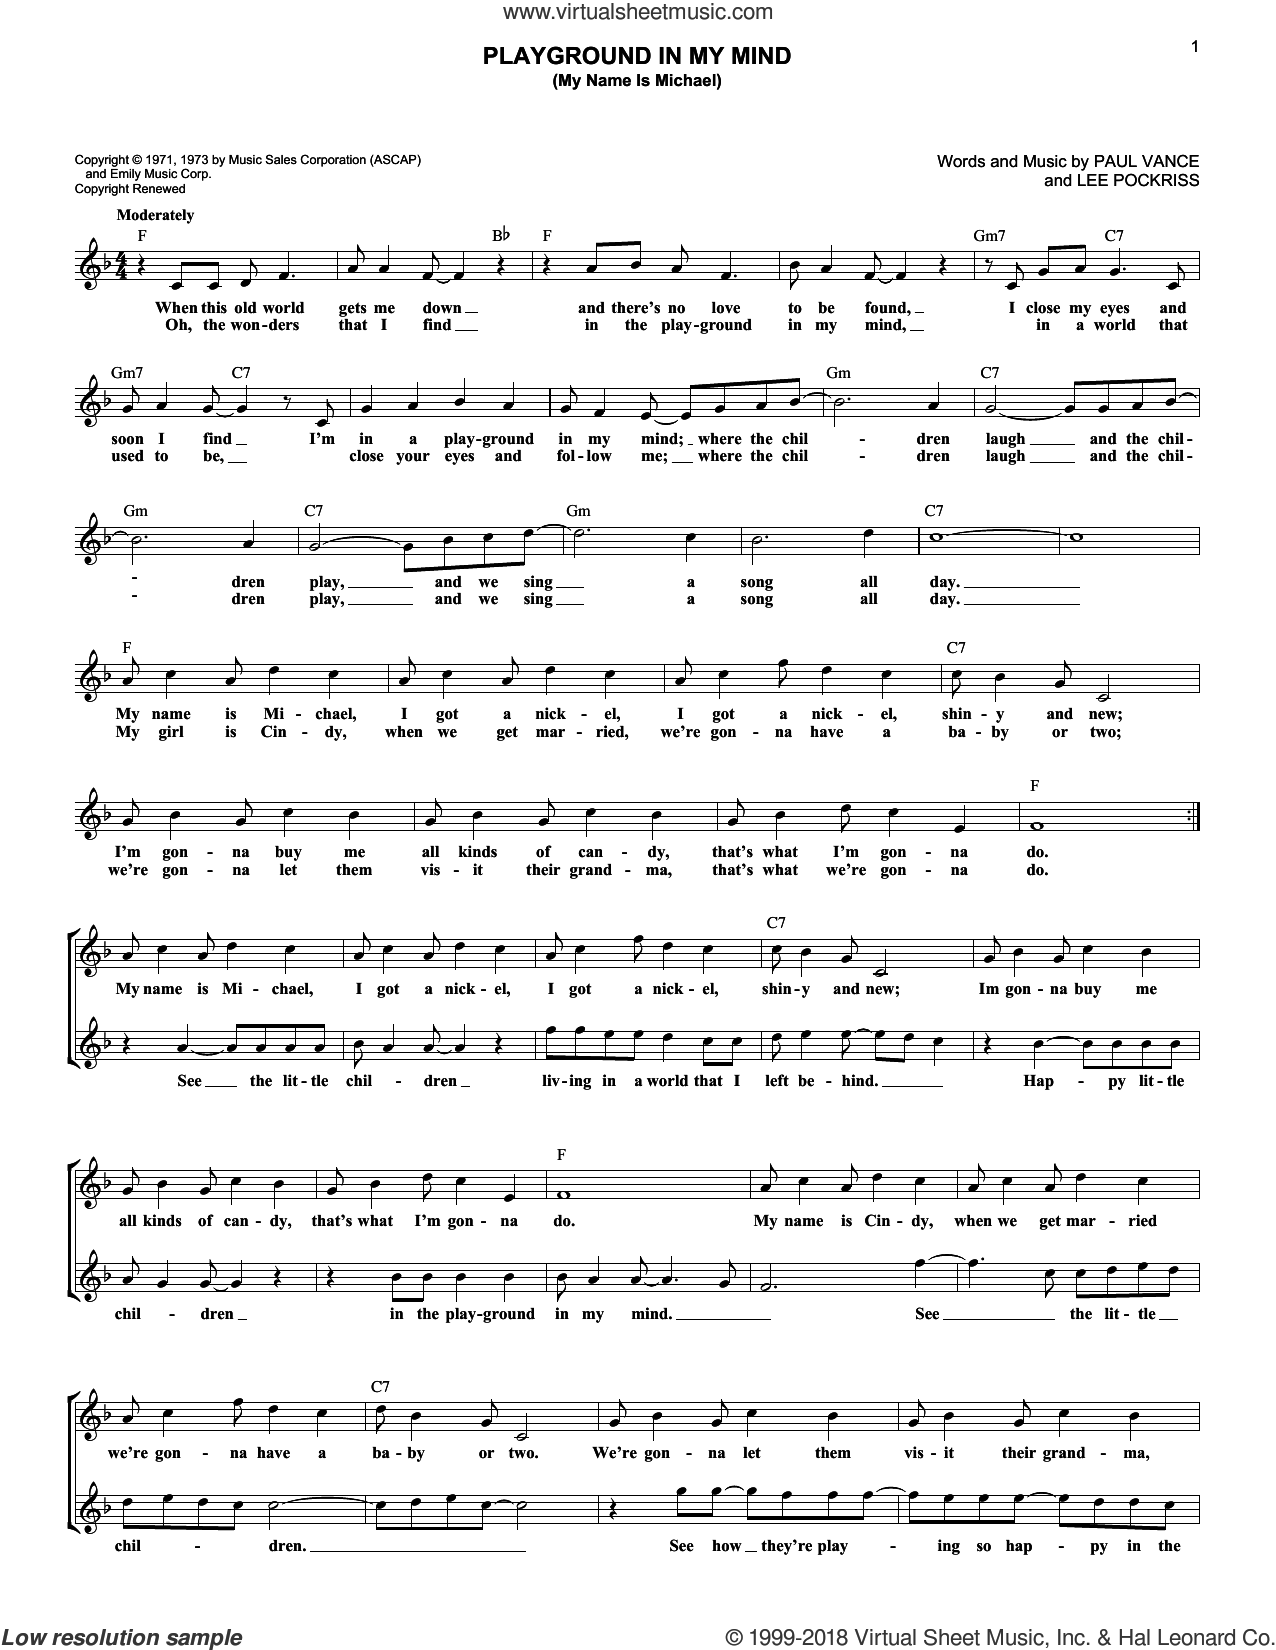 Playground In My Mind (My Name Is Michael) sheet music for voice and other instruments (fake book) by Clint Holmes, Lee Pockriss and Paul Vance, intermediate skill level